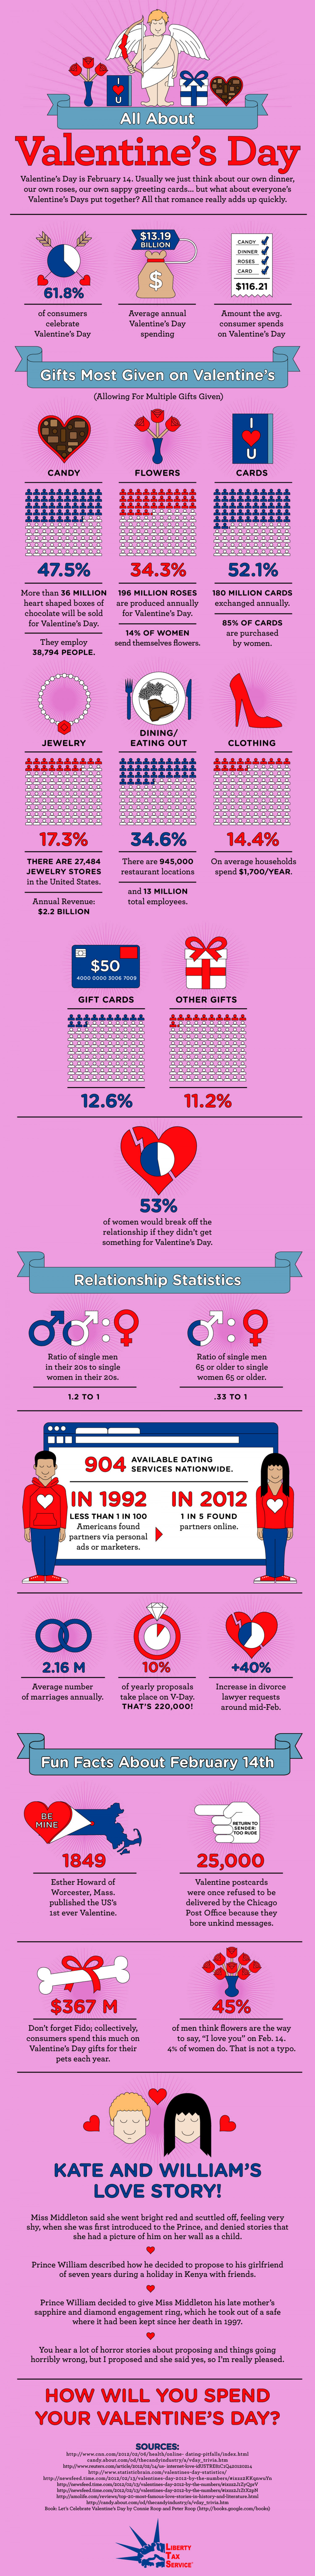 All About Valentine's Day  Infographic